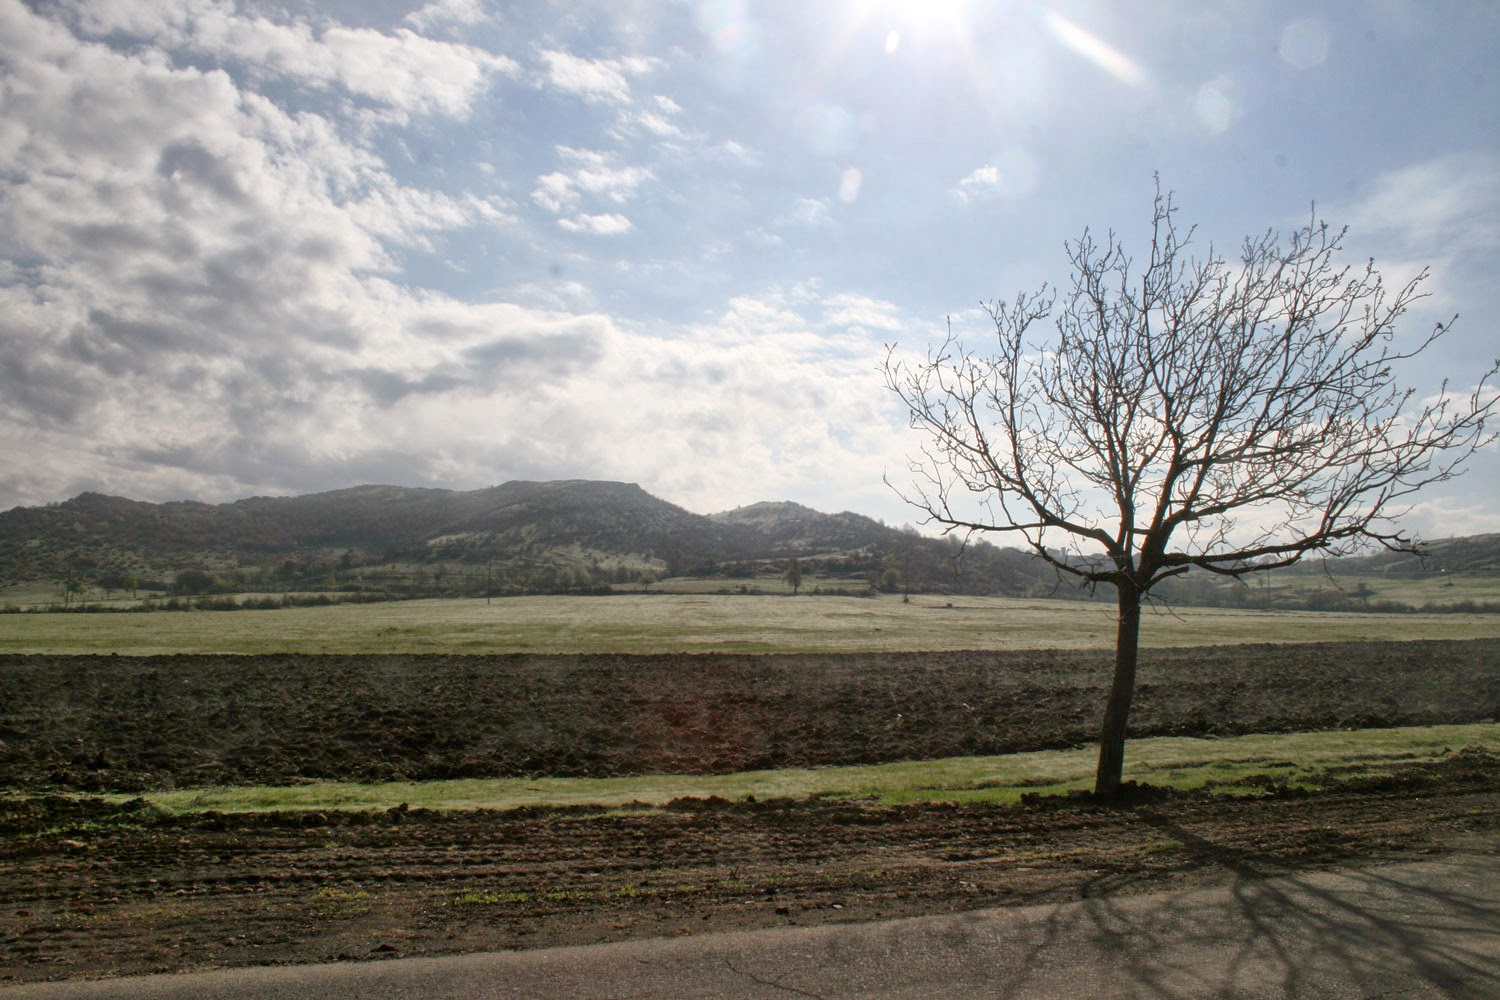 Leaving town, ploughed fields and mountains